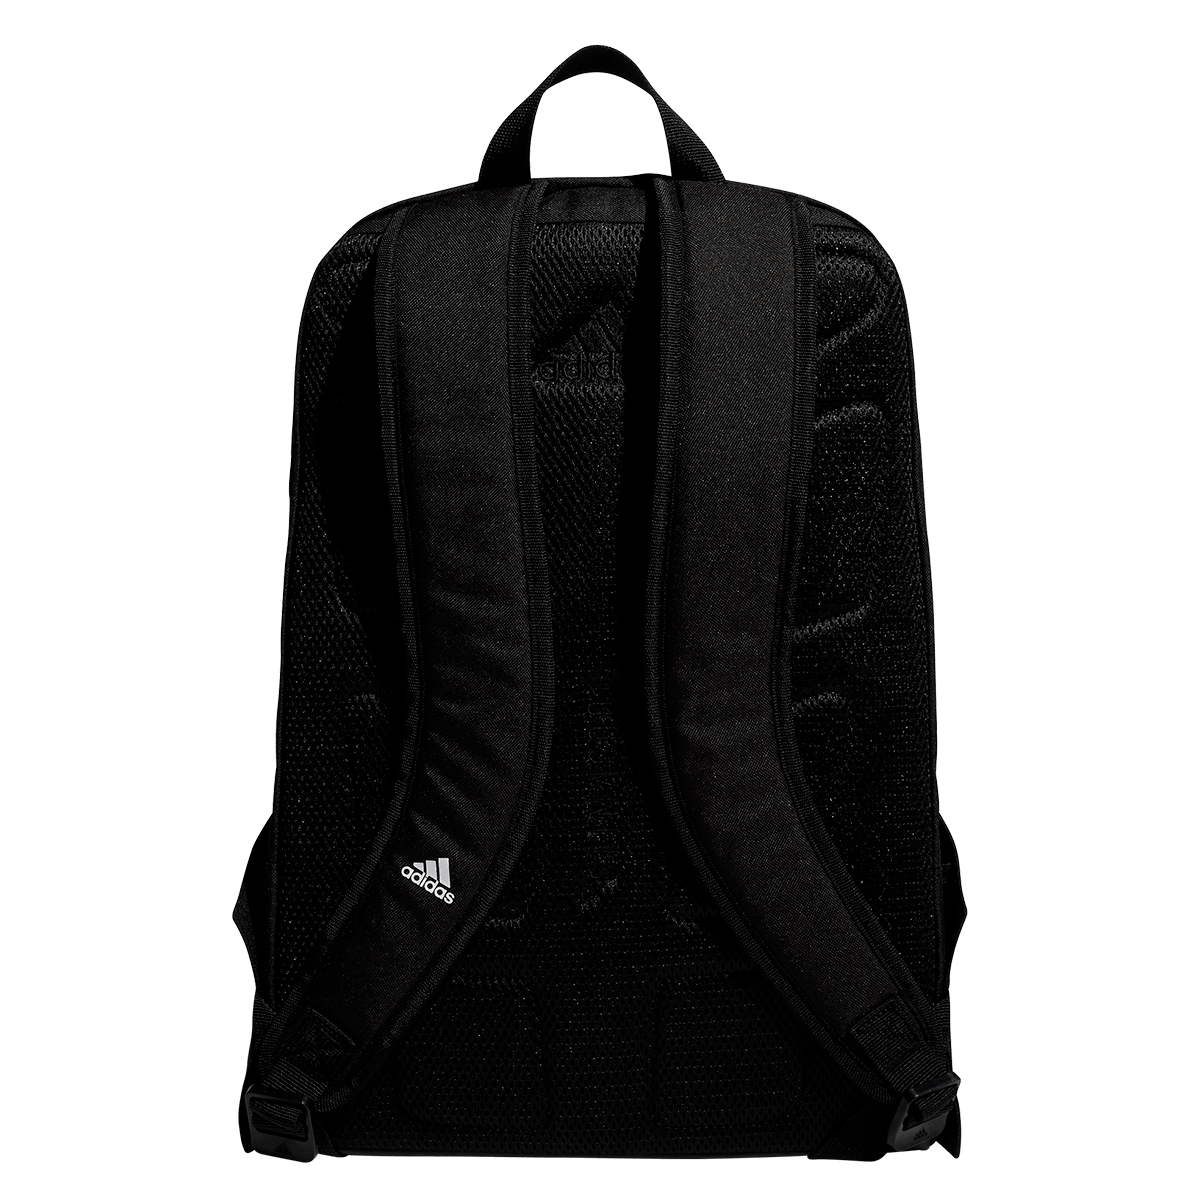 adidas hátizsák Parkhood Badge of Sport Backpack feketefehér